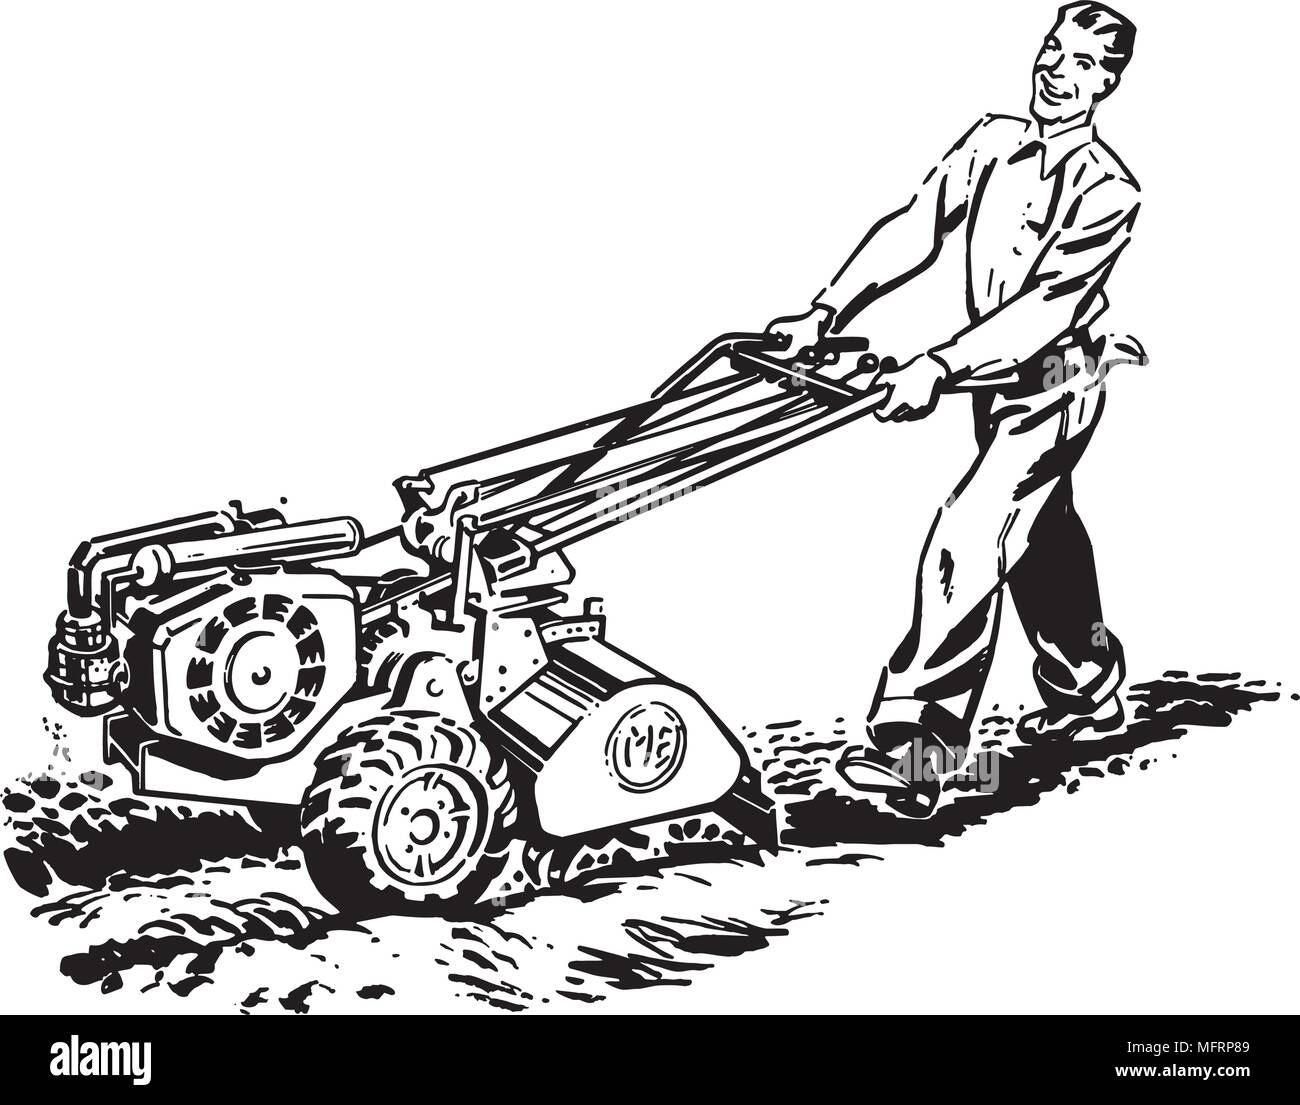 Man With Roto Tiller - Retro Clipart Illustration - Stock Image